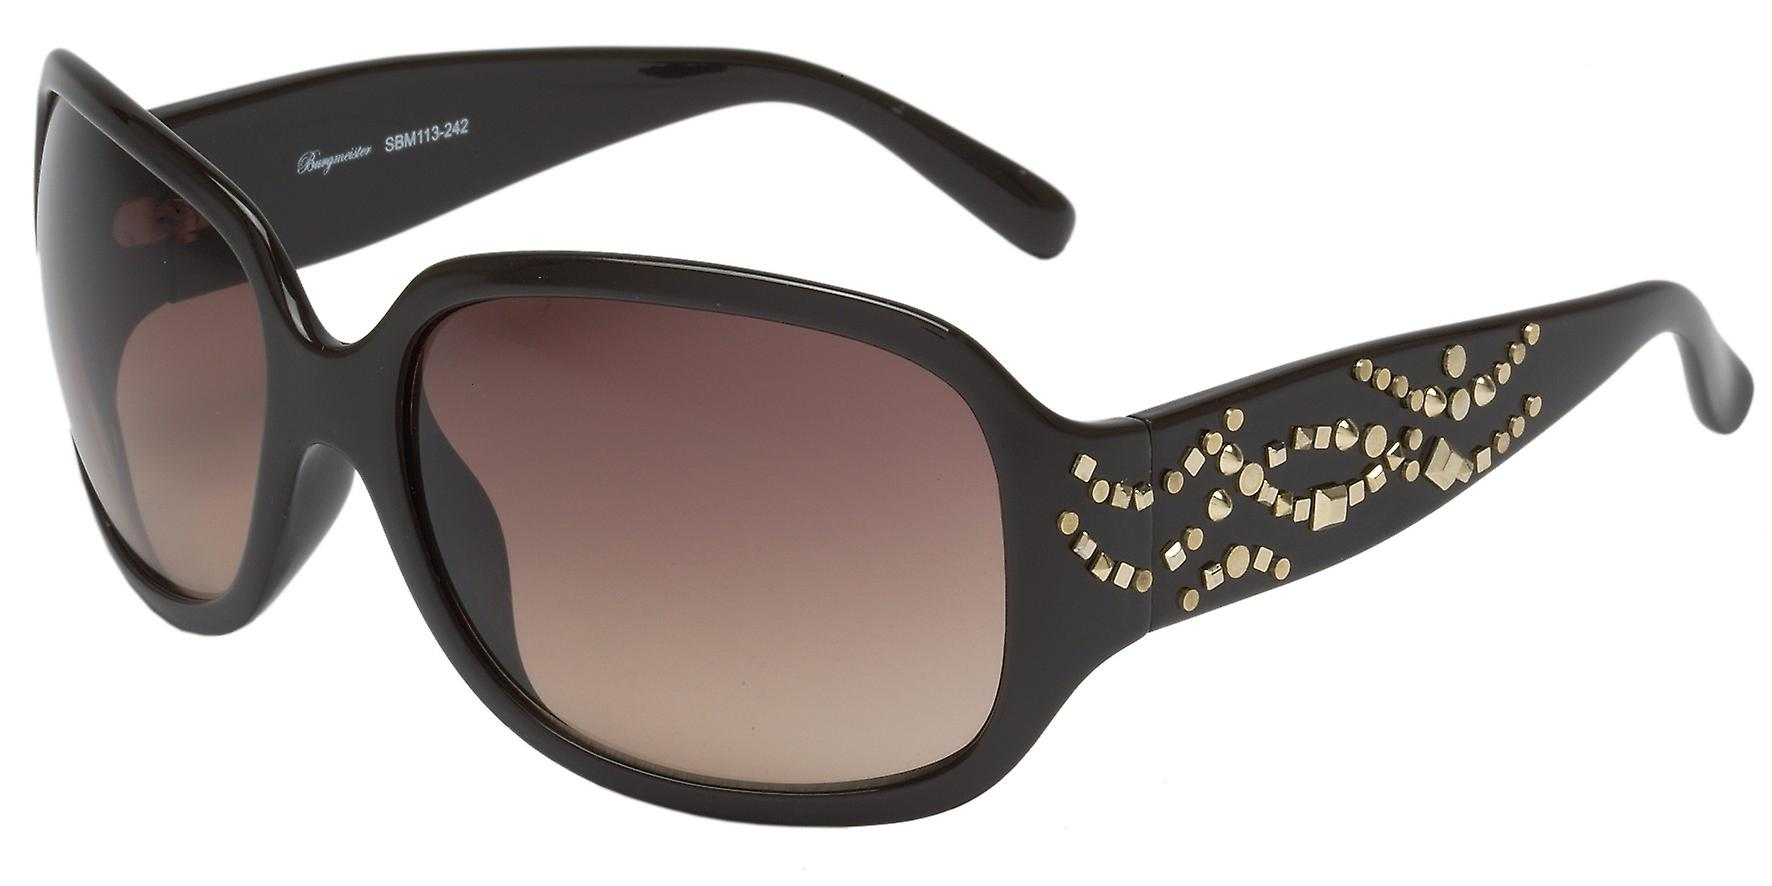 Burgmeister Ladies sunglasses Las Vegas, SBM113-242